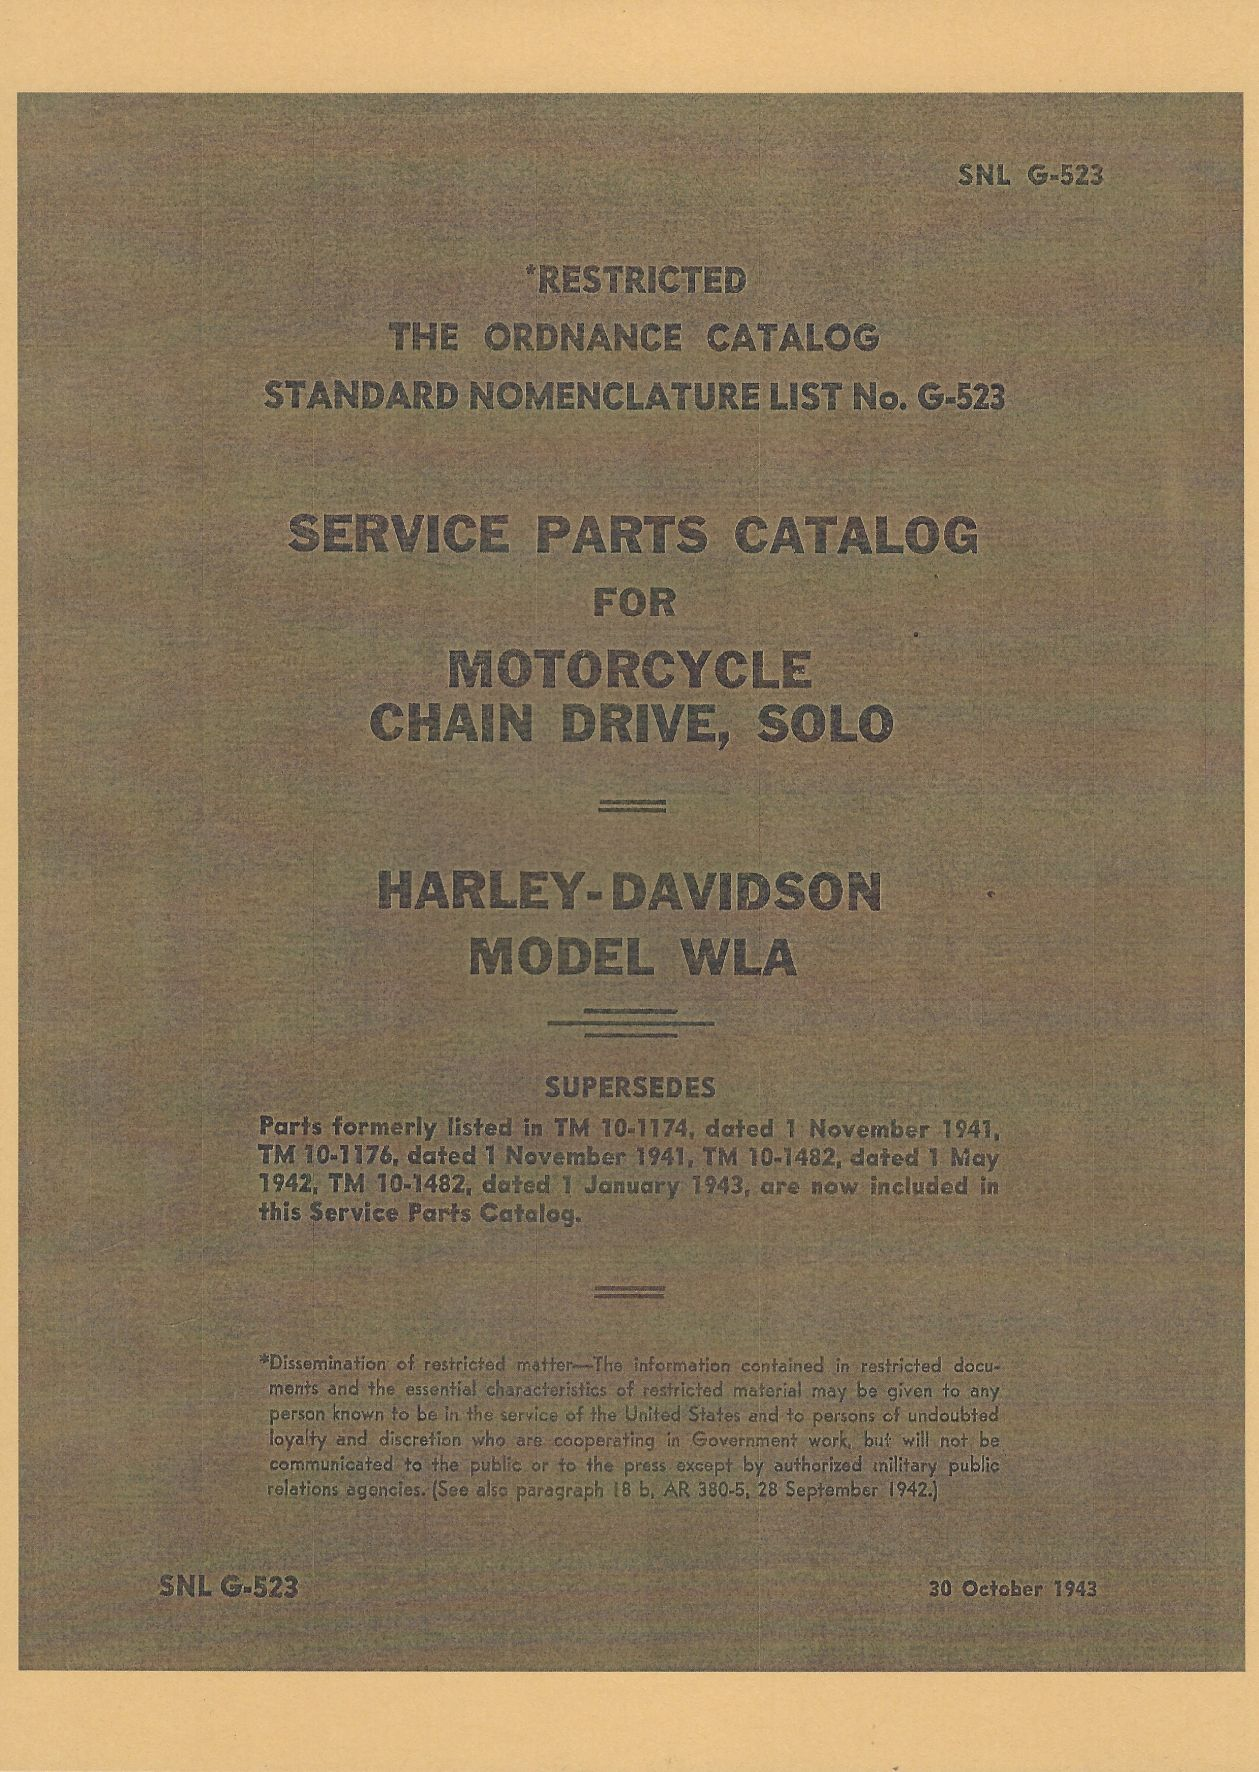 SNL G-523 US SERVICE PARTS CATALOG FOR MOTORCYCLE  CHAIN DRIVE, SOLO HARLEY-DAVIDSON MODEL WLA